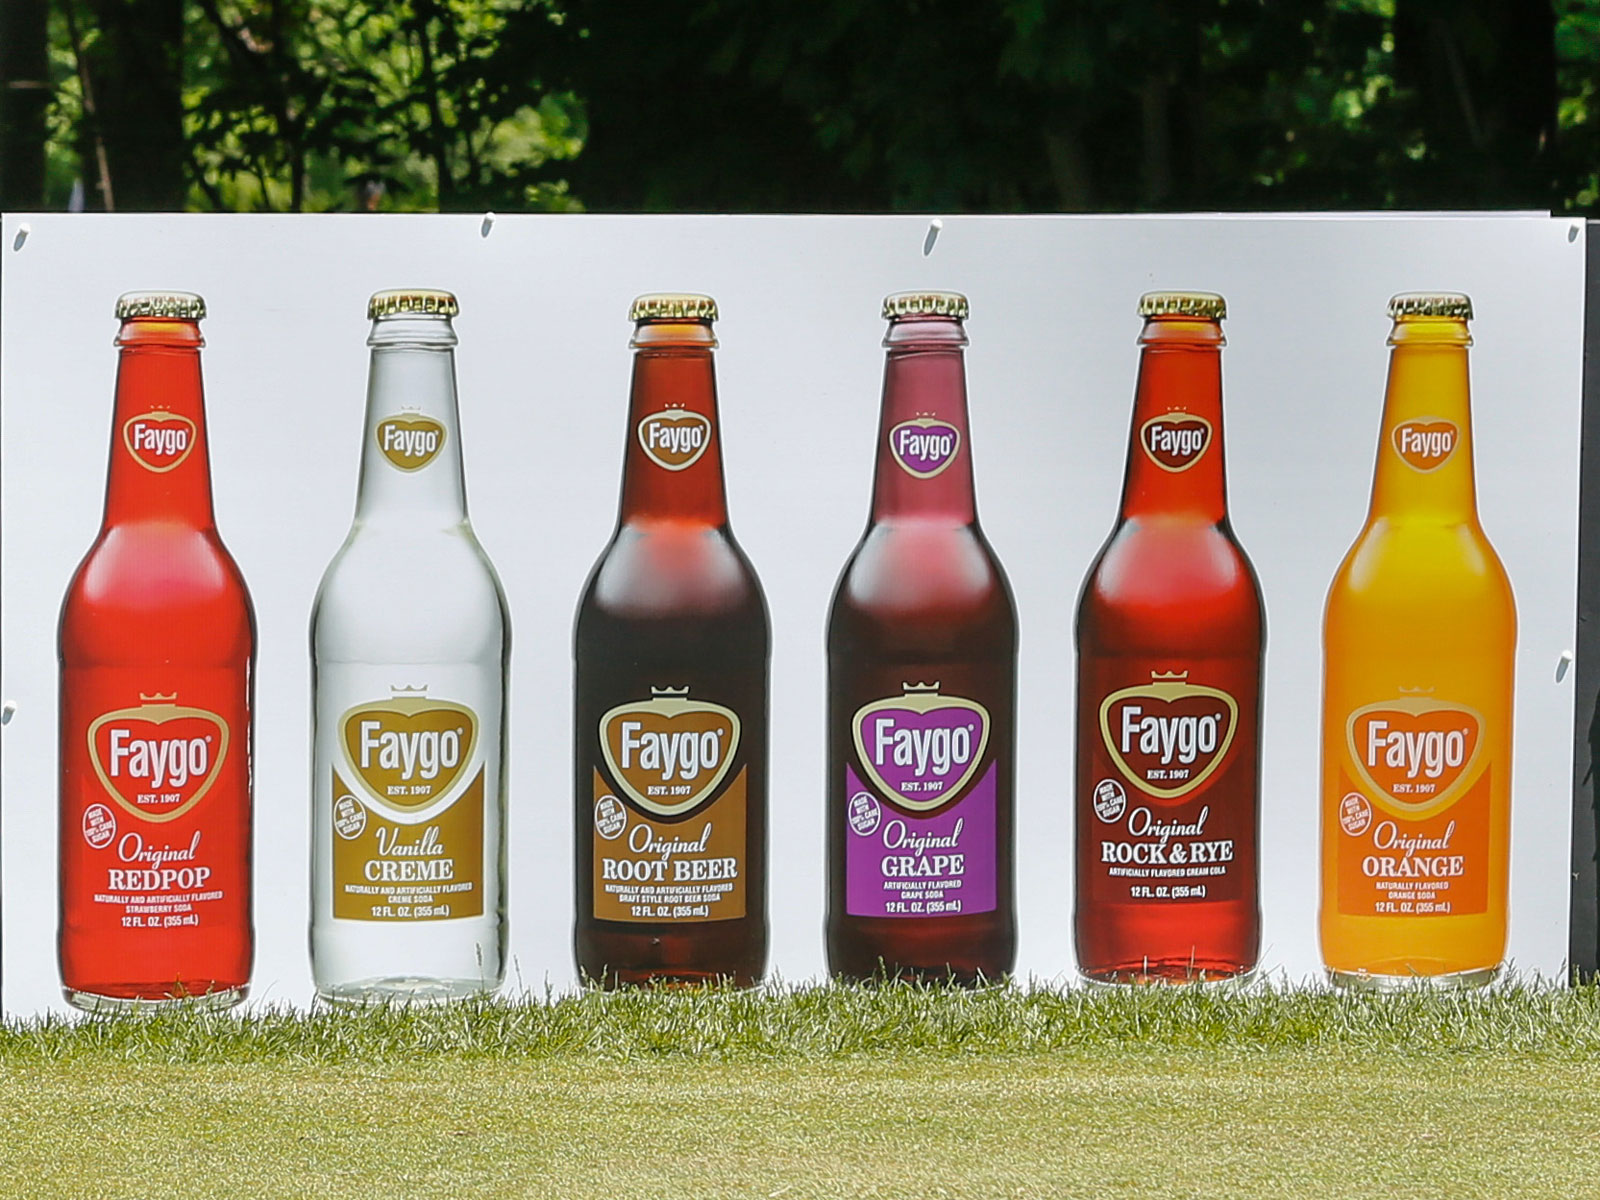 faygo-beer-FT-BLOG1018.jpg